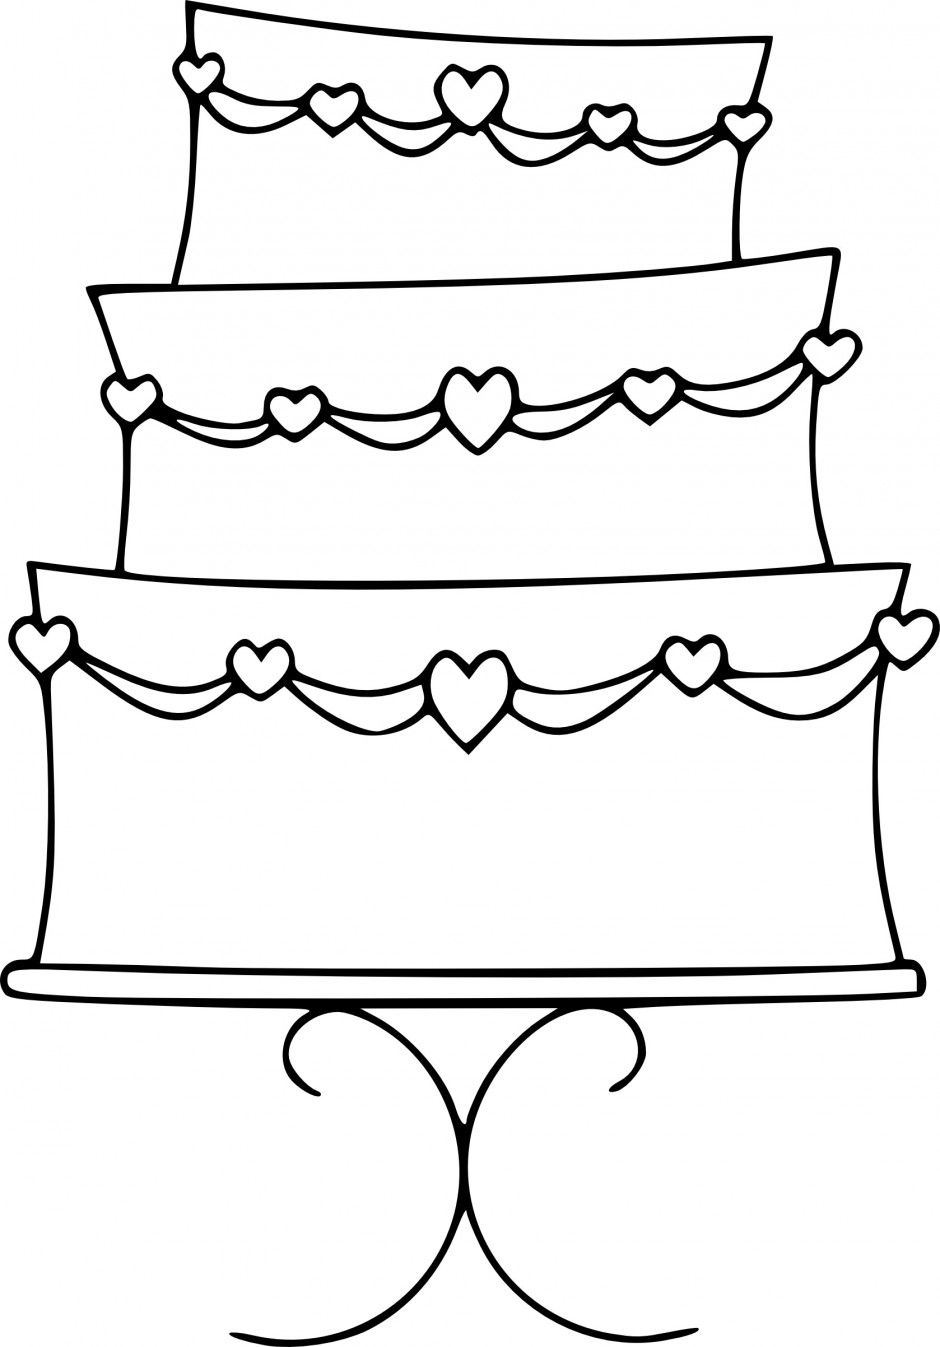 Printable Cupcake Coloring Pages For Kids Wedding Coloring